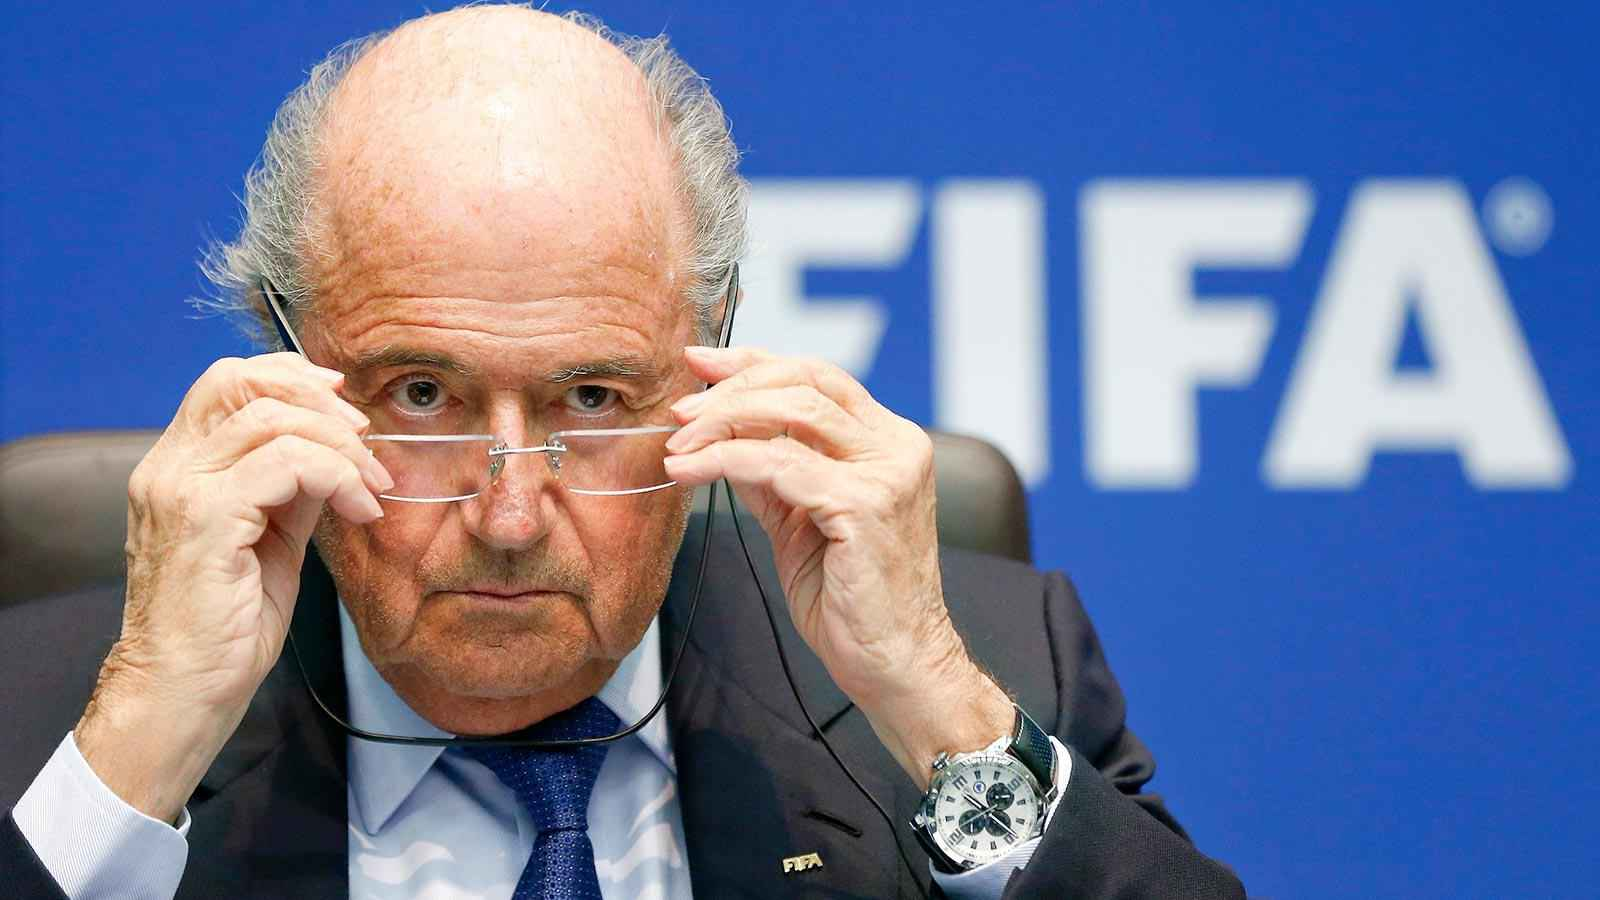 FIFA President Sepp Blatter adjusts his glasses as he addresses a news conference after a meeting of the FIFA executive committee in Zurich March 21, 2014. REUTERS/Arnd Wiegmann  (SWITZERLAND - Tags: SPORT SOCCER HEADSHOT)  Picture Supplied by Action Images